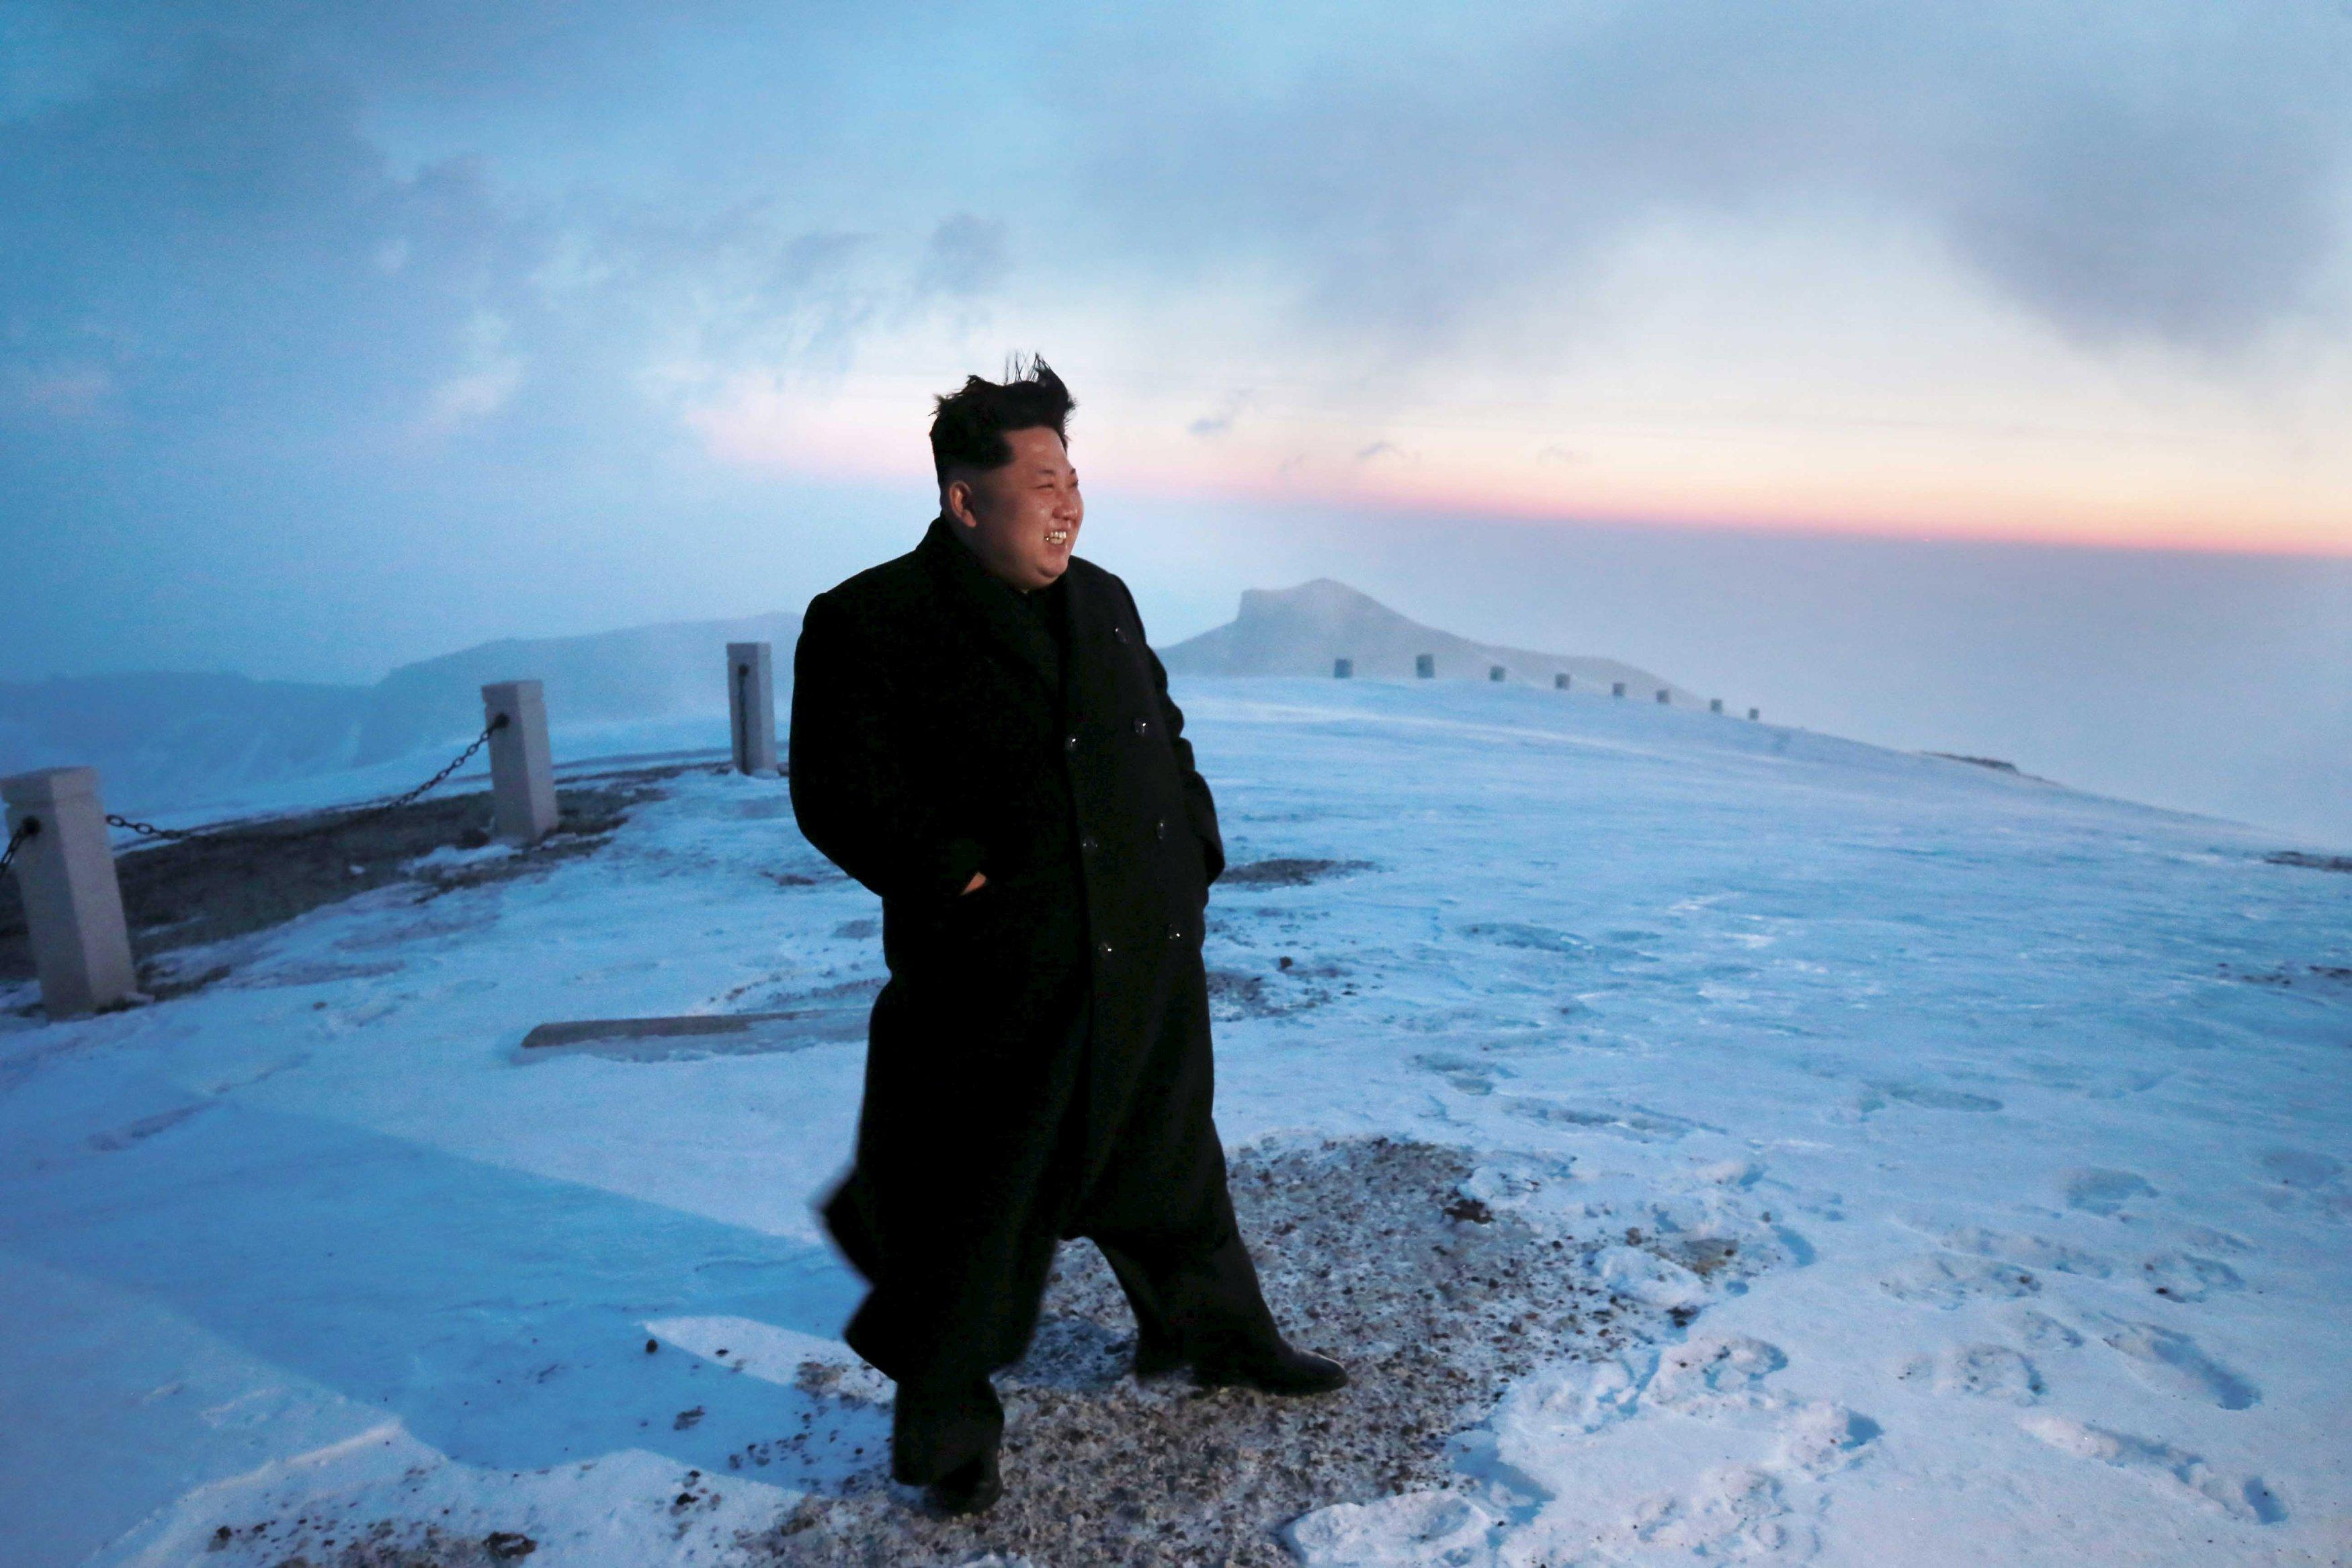 Kim Jong-Un climbs North Korea's highest mountain: state media